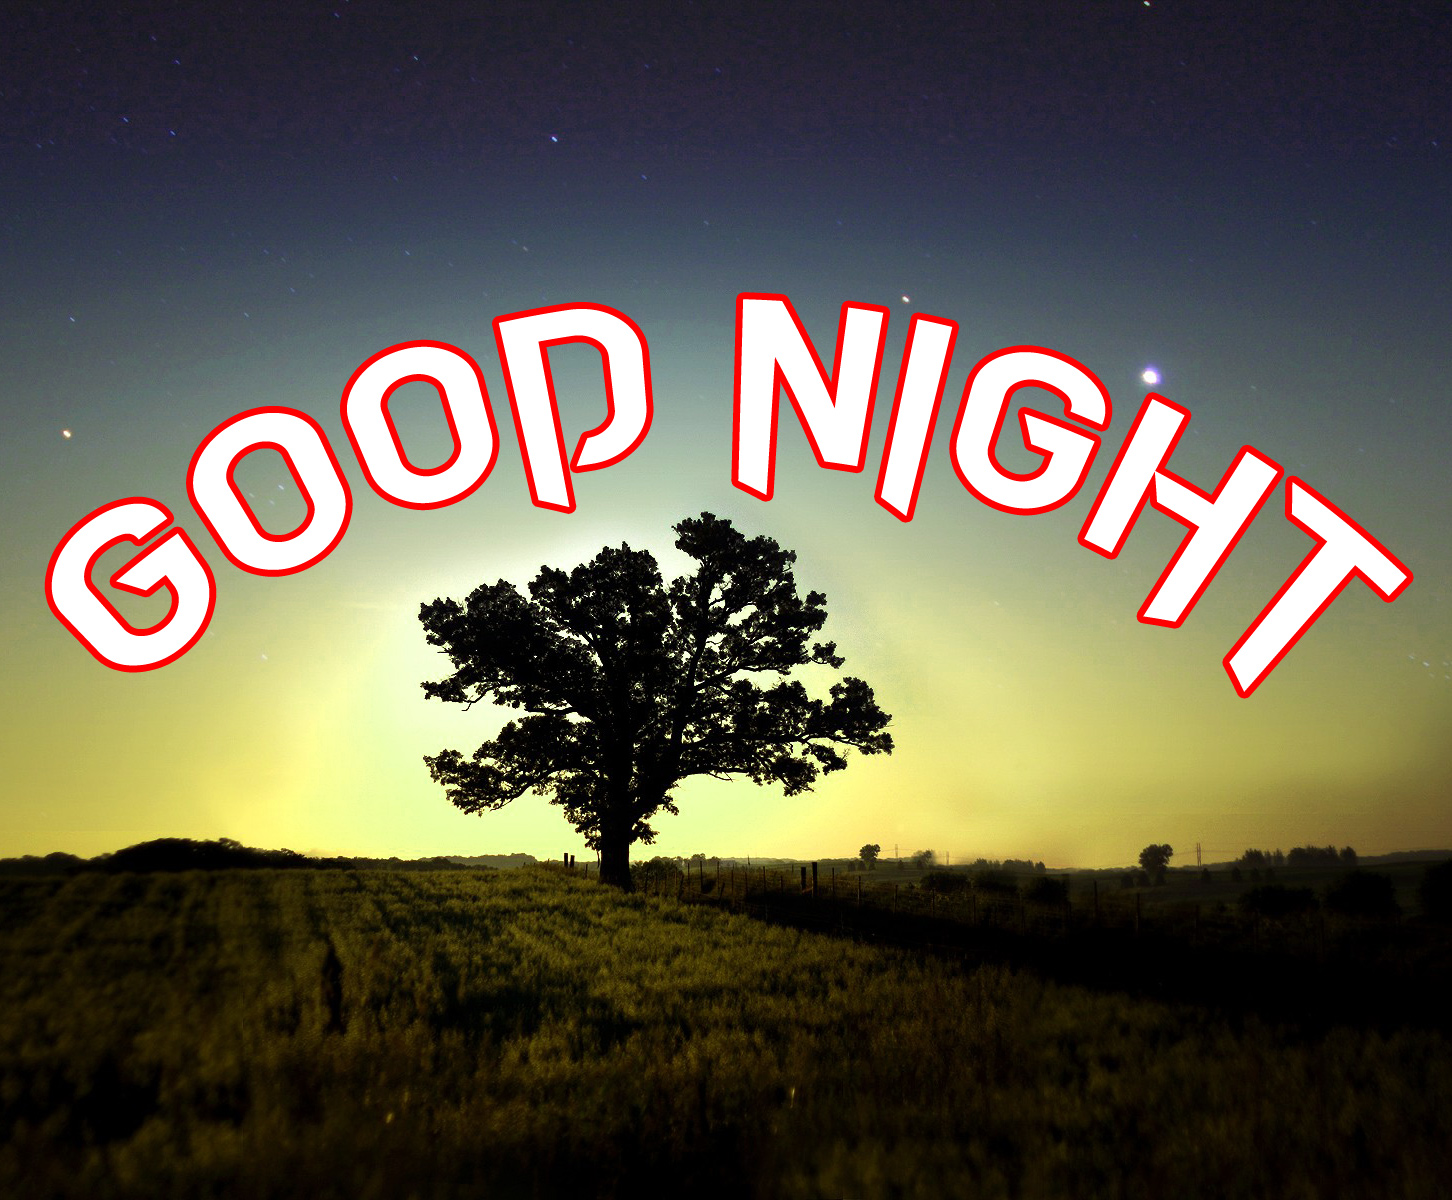 DOWNLOAD GOOD NIGHT IMAGES WALLPAPER PHOTO FREE HD